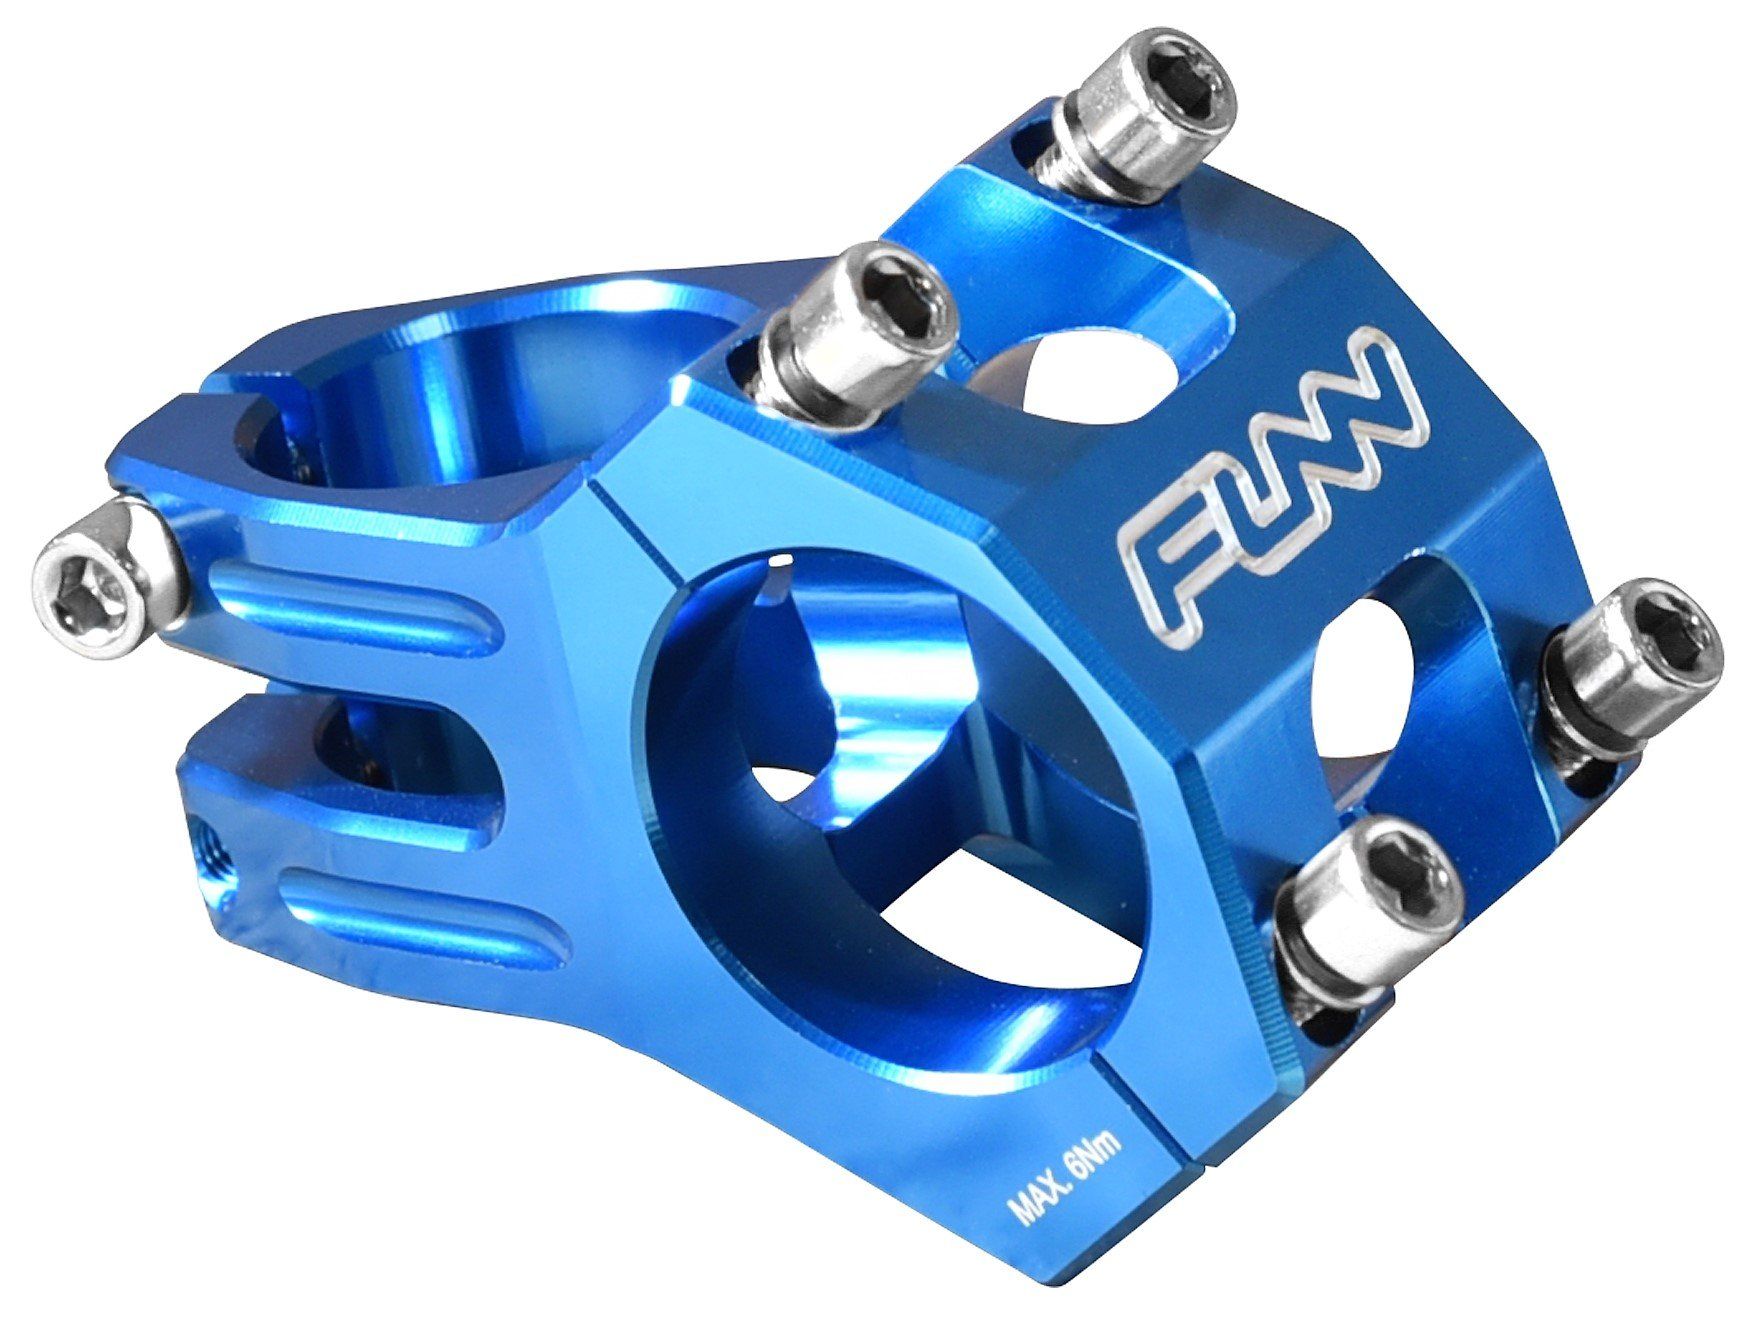 Funn Funnduro MTB Stem, Bar Clamp 31.8mm (Length 45mm, Blue)